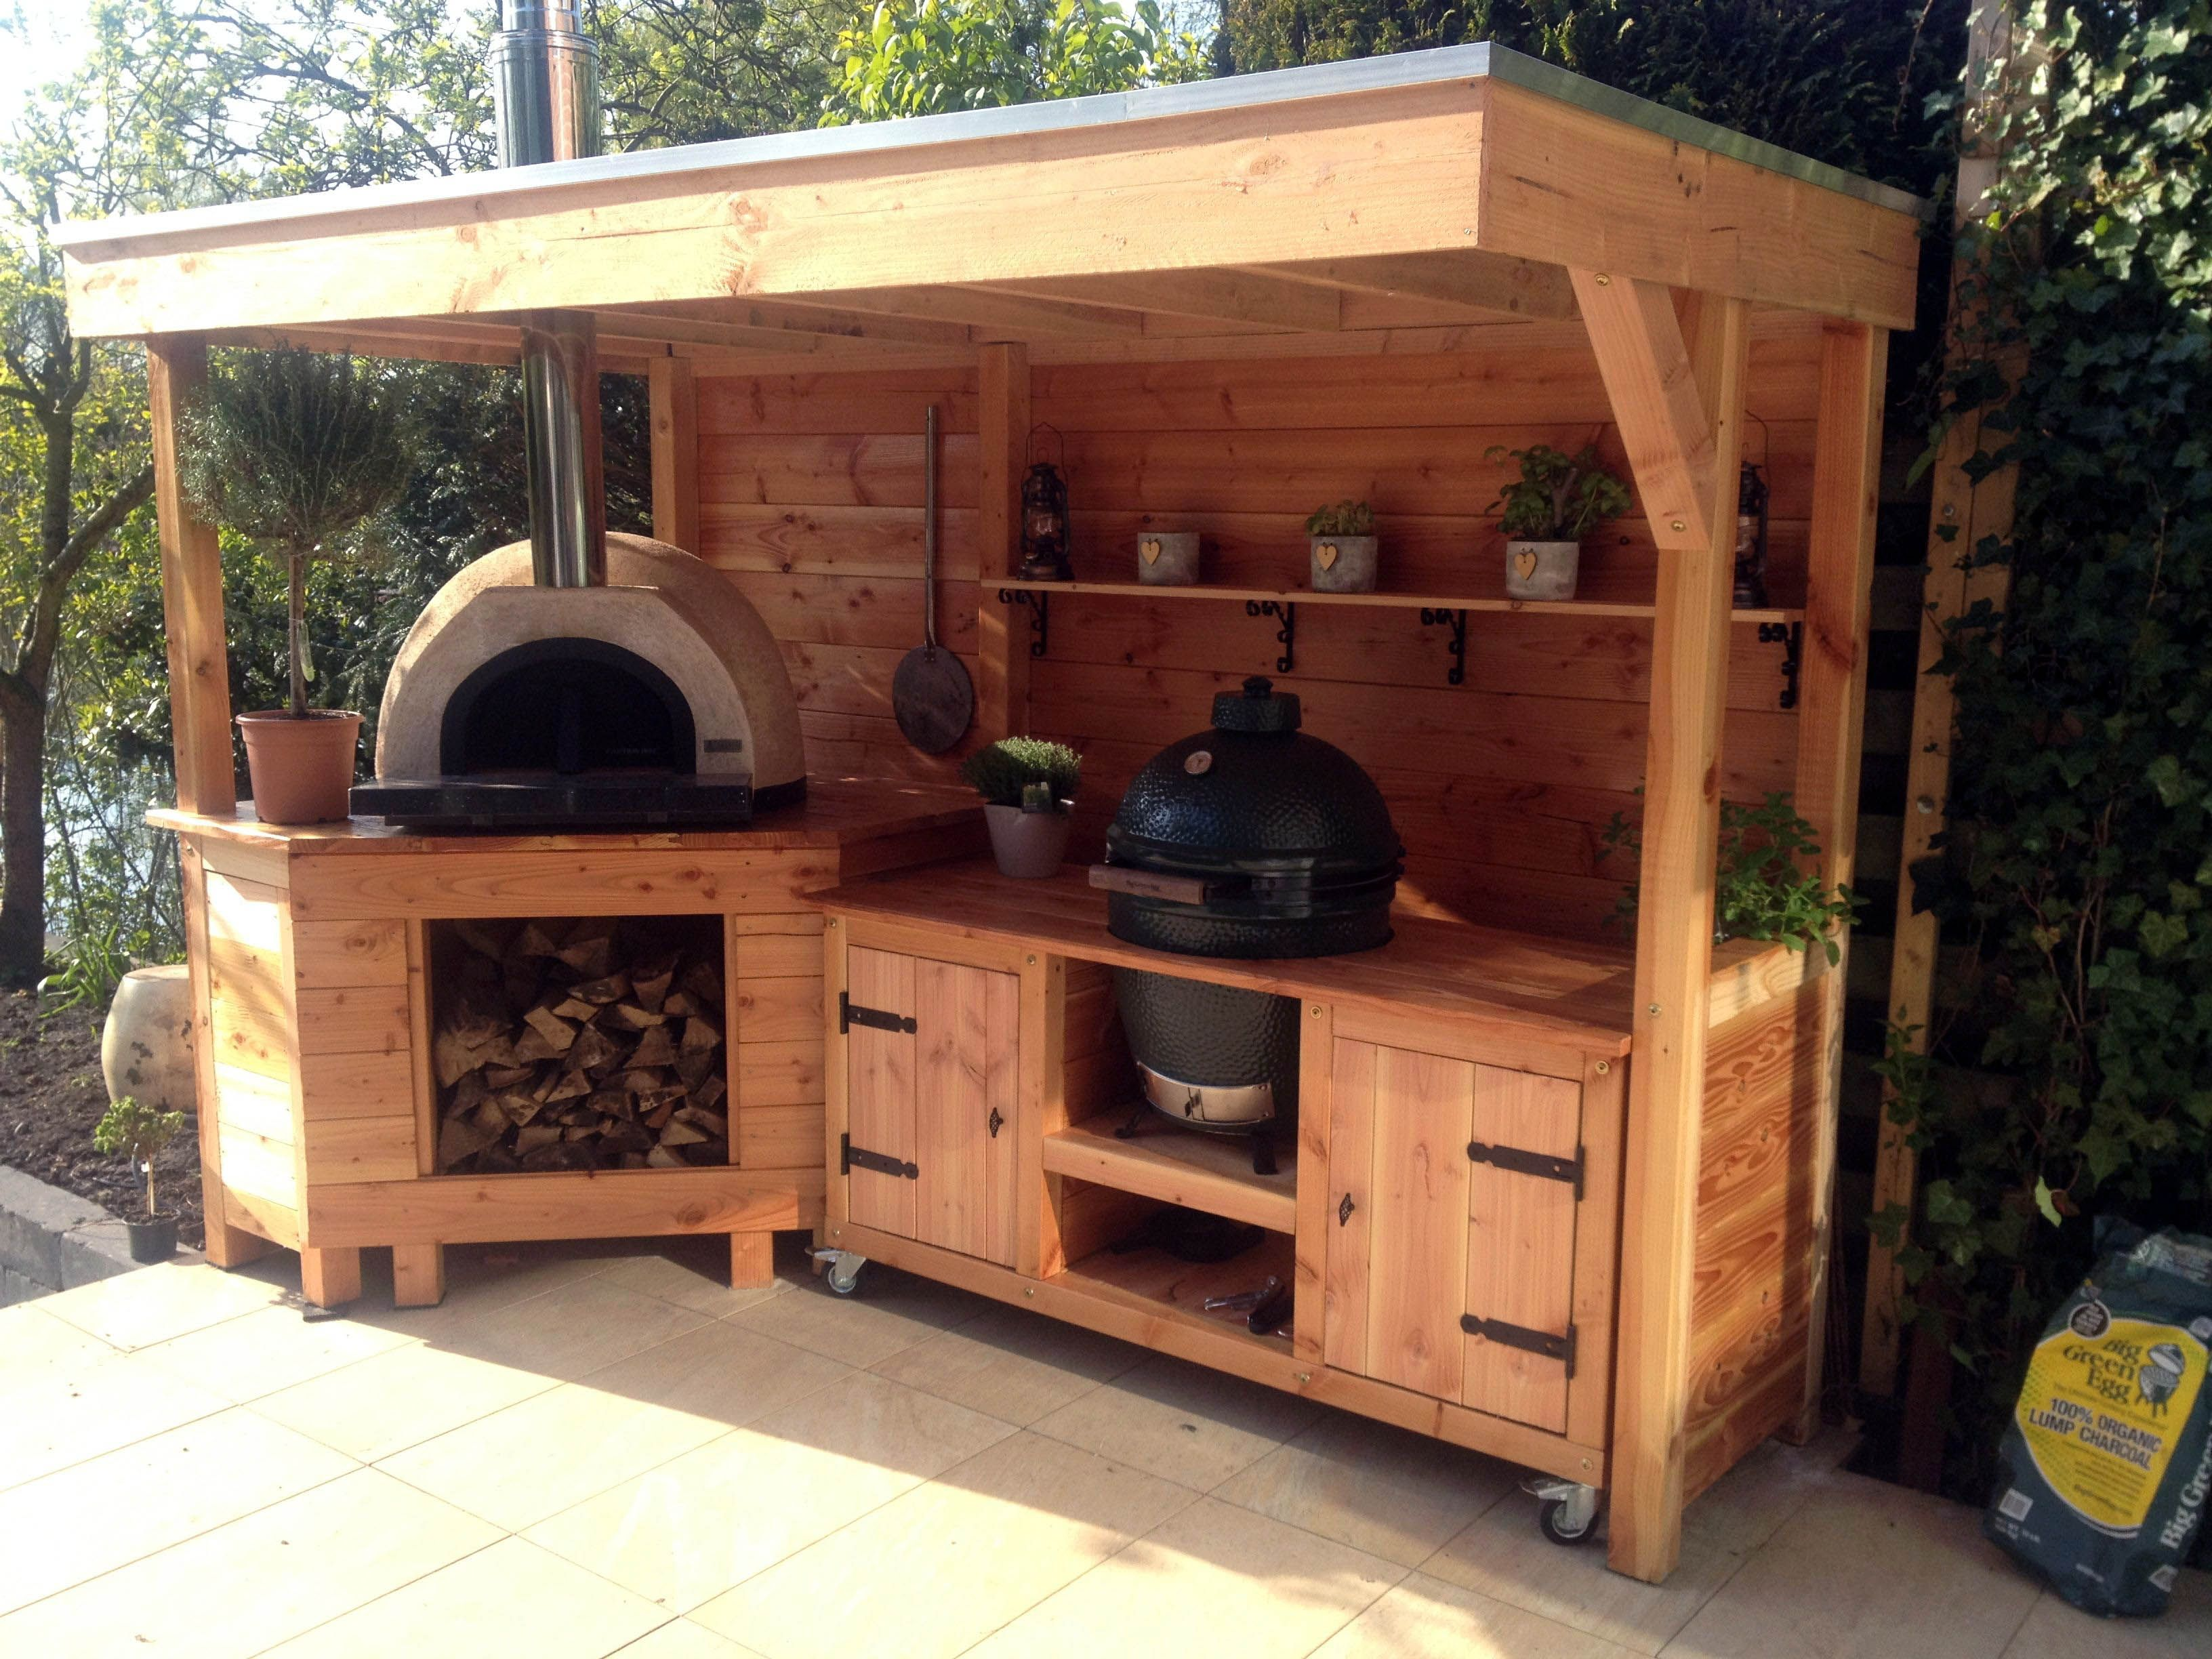 Fascinating affordable outdoor kitchen ideas just on ...